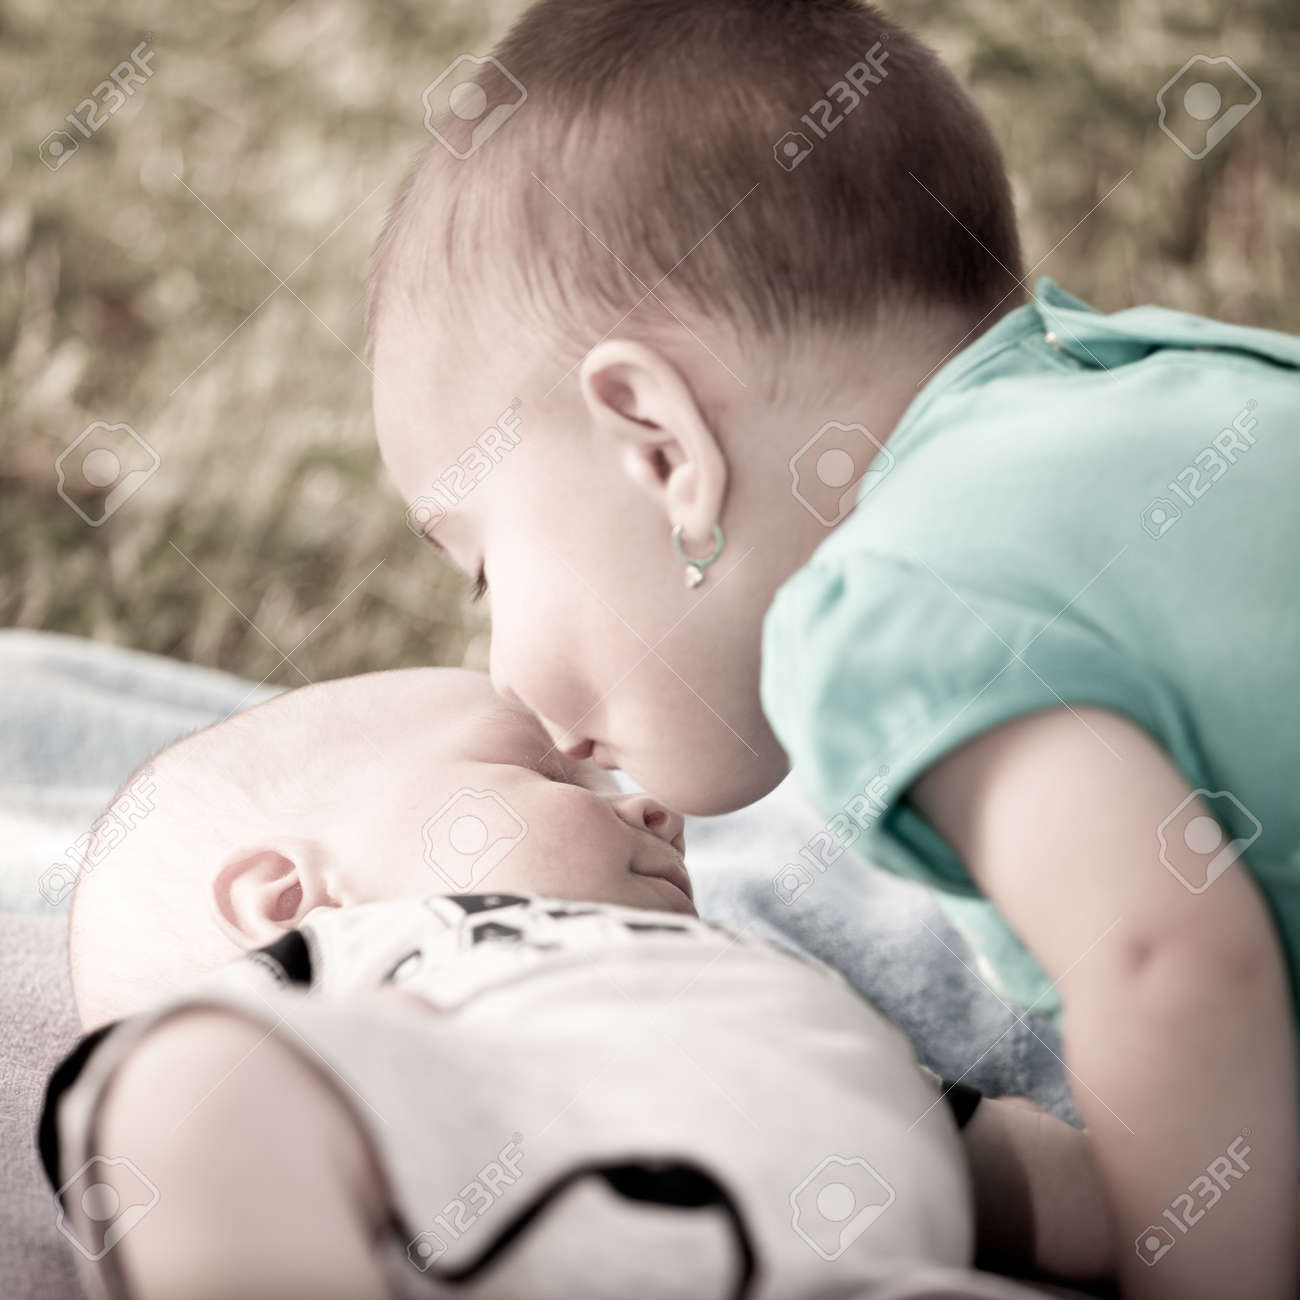 Bay girl giving a kiss to her new born baby brother Stock Photo - 7302663